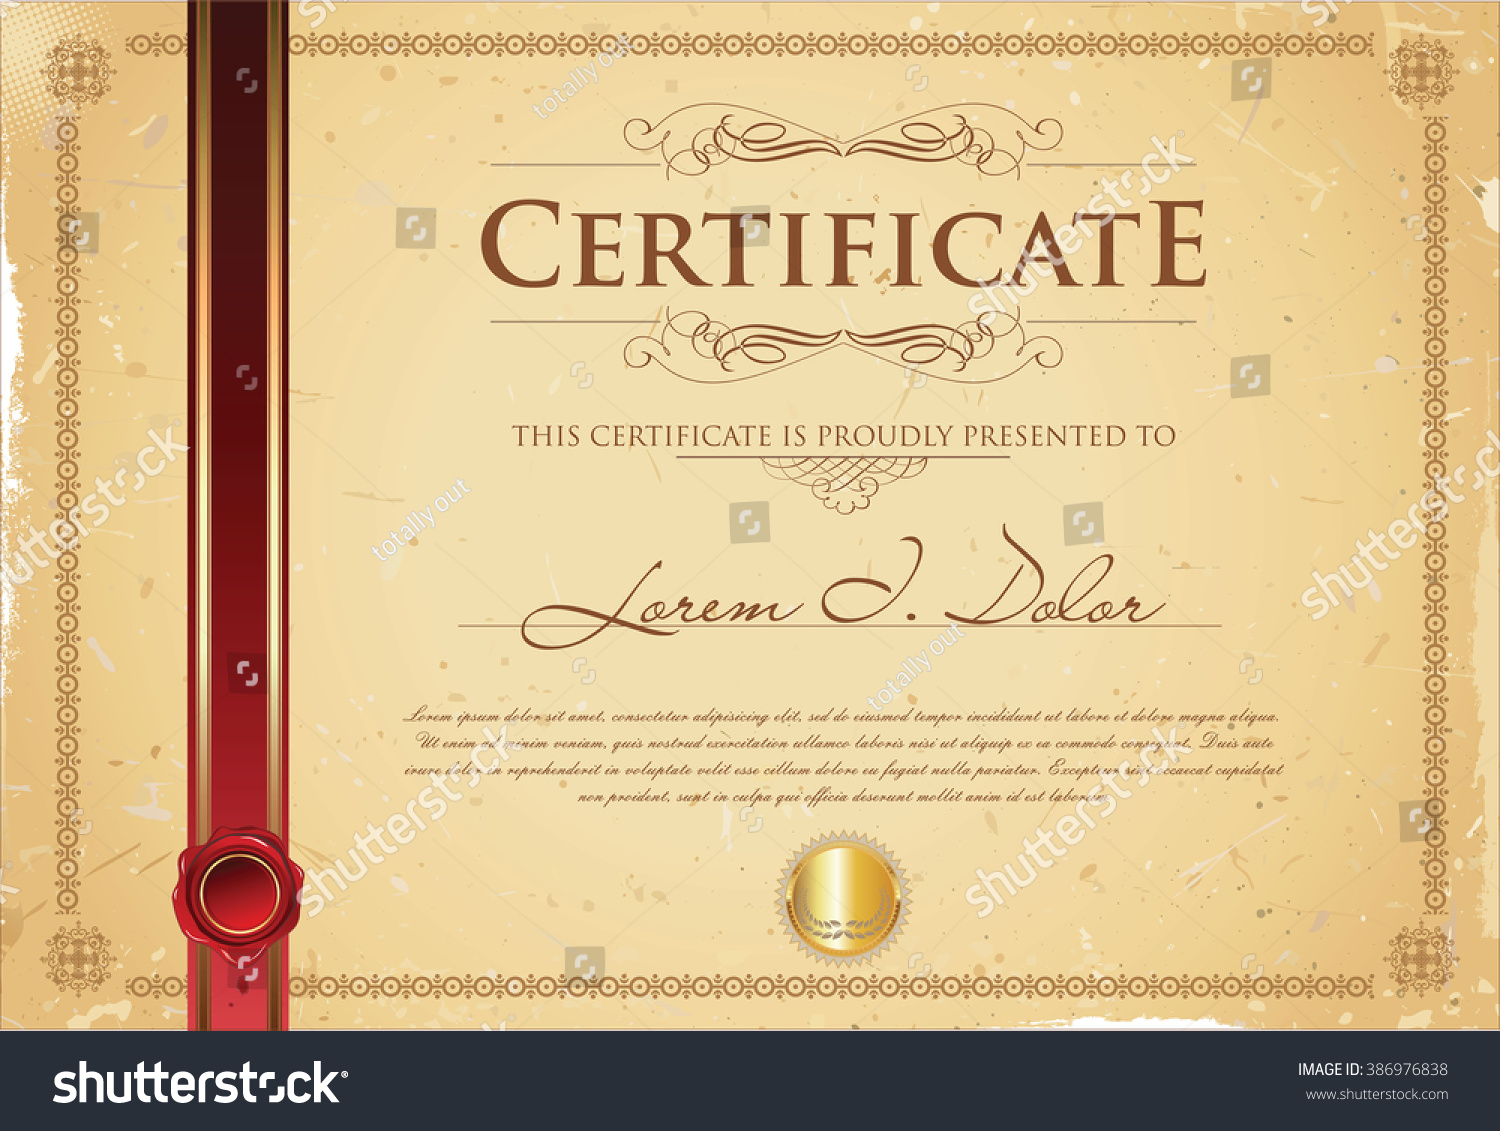 Certificate diploma template vector stock vector 386976838 certificate or diploma template vector yadclub Image collections